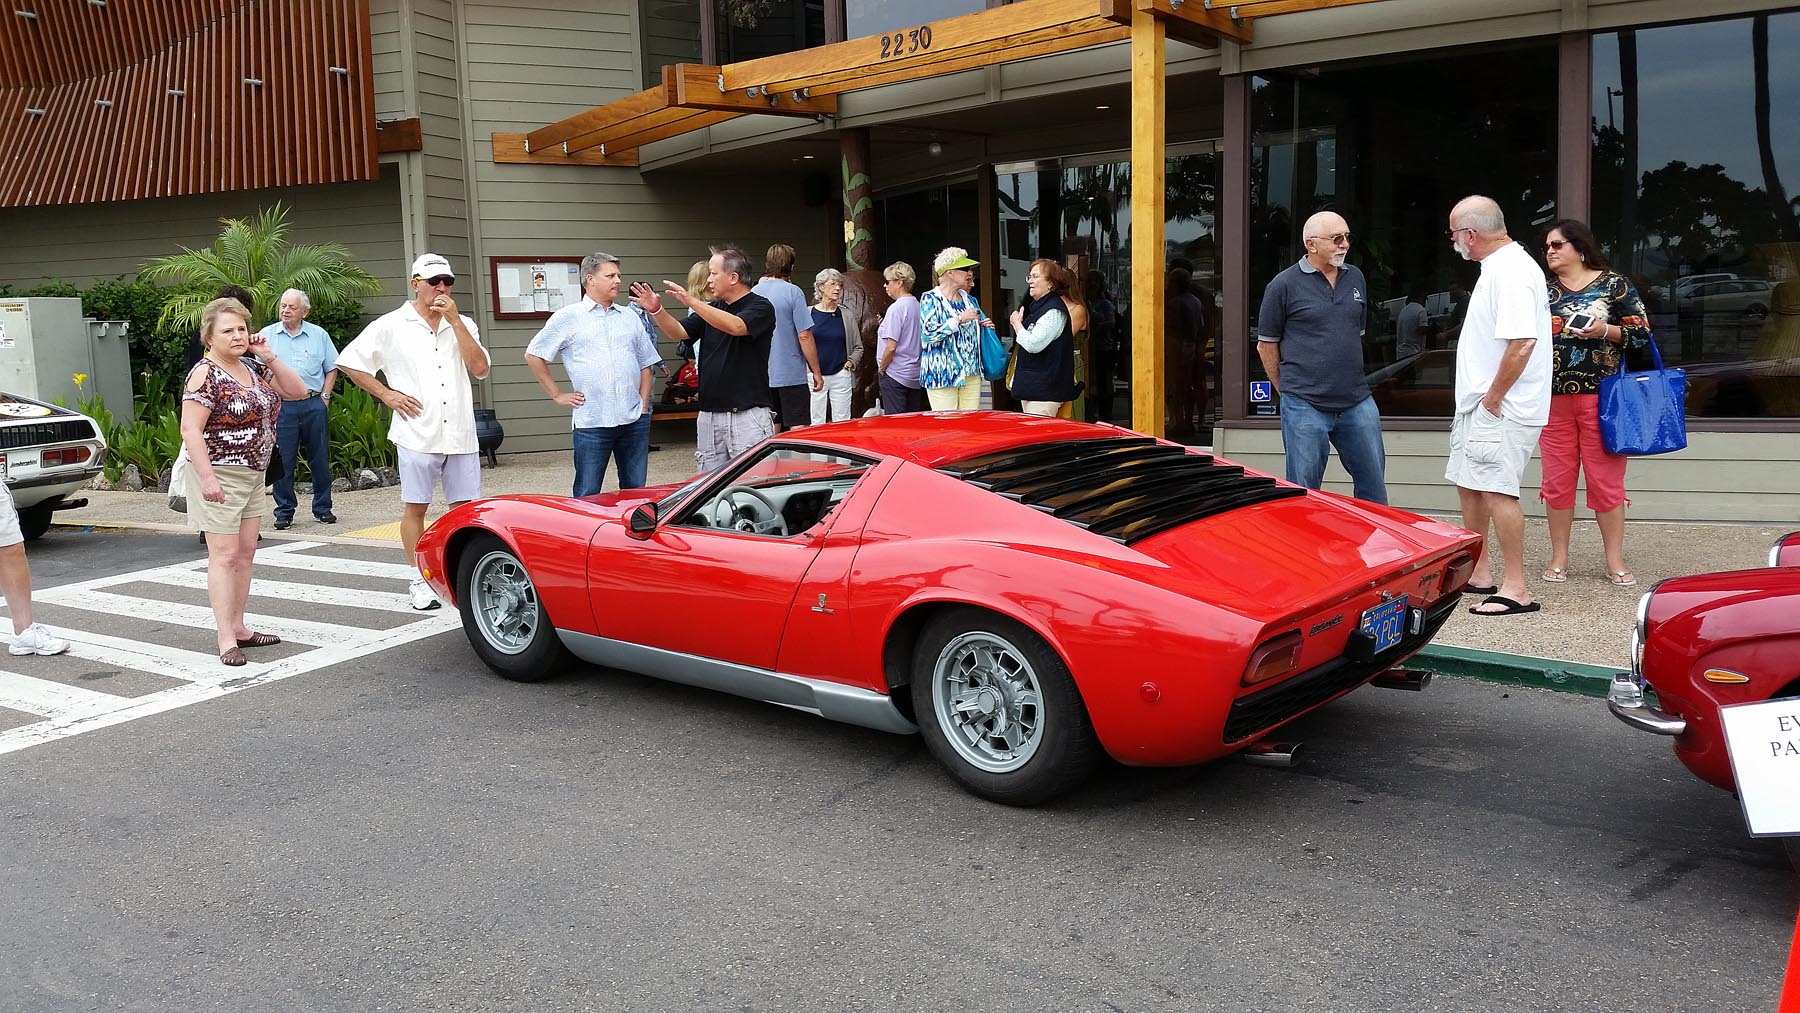 The Miura Got Prime Parking - Deservedly